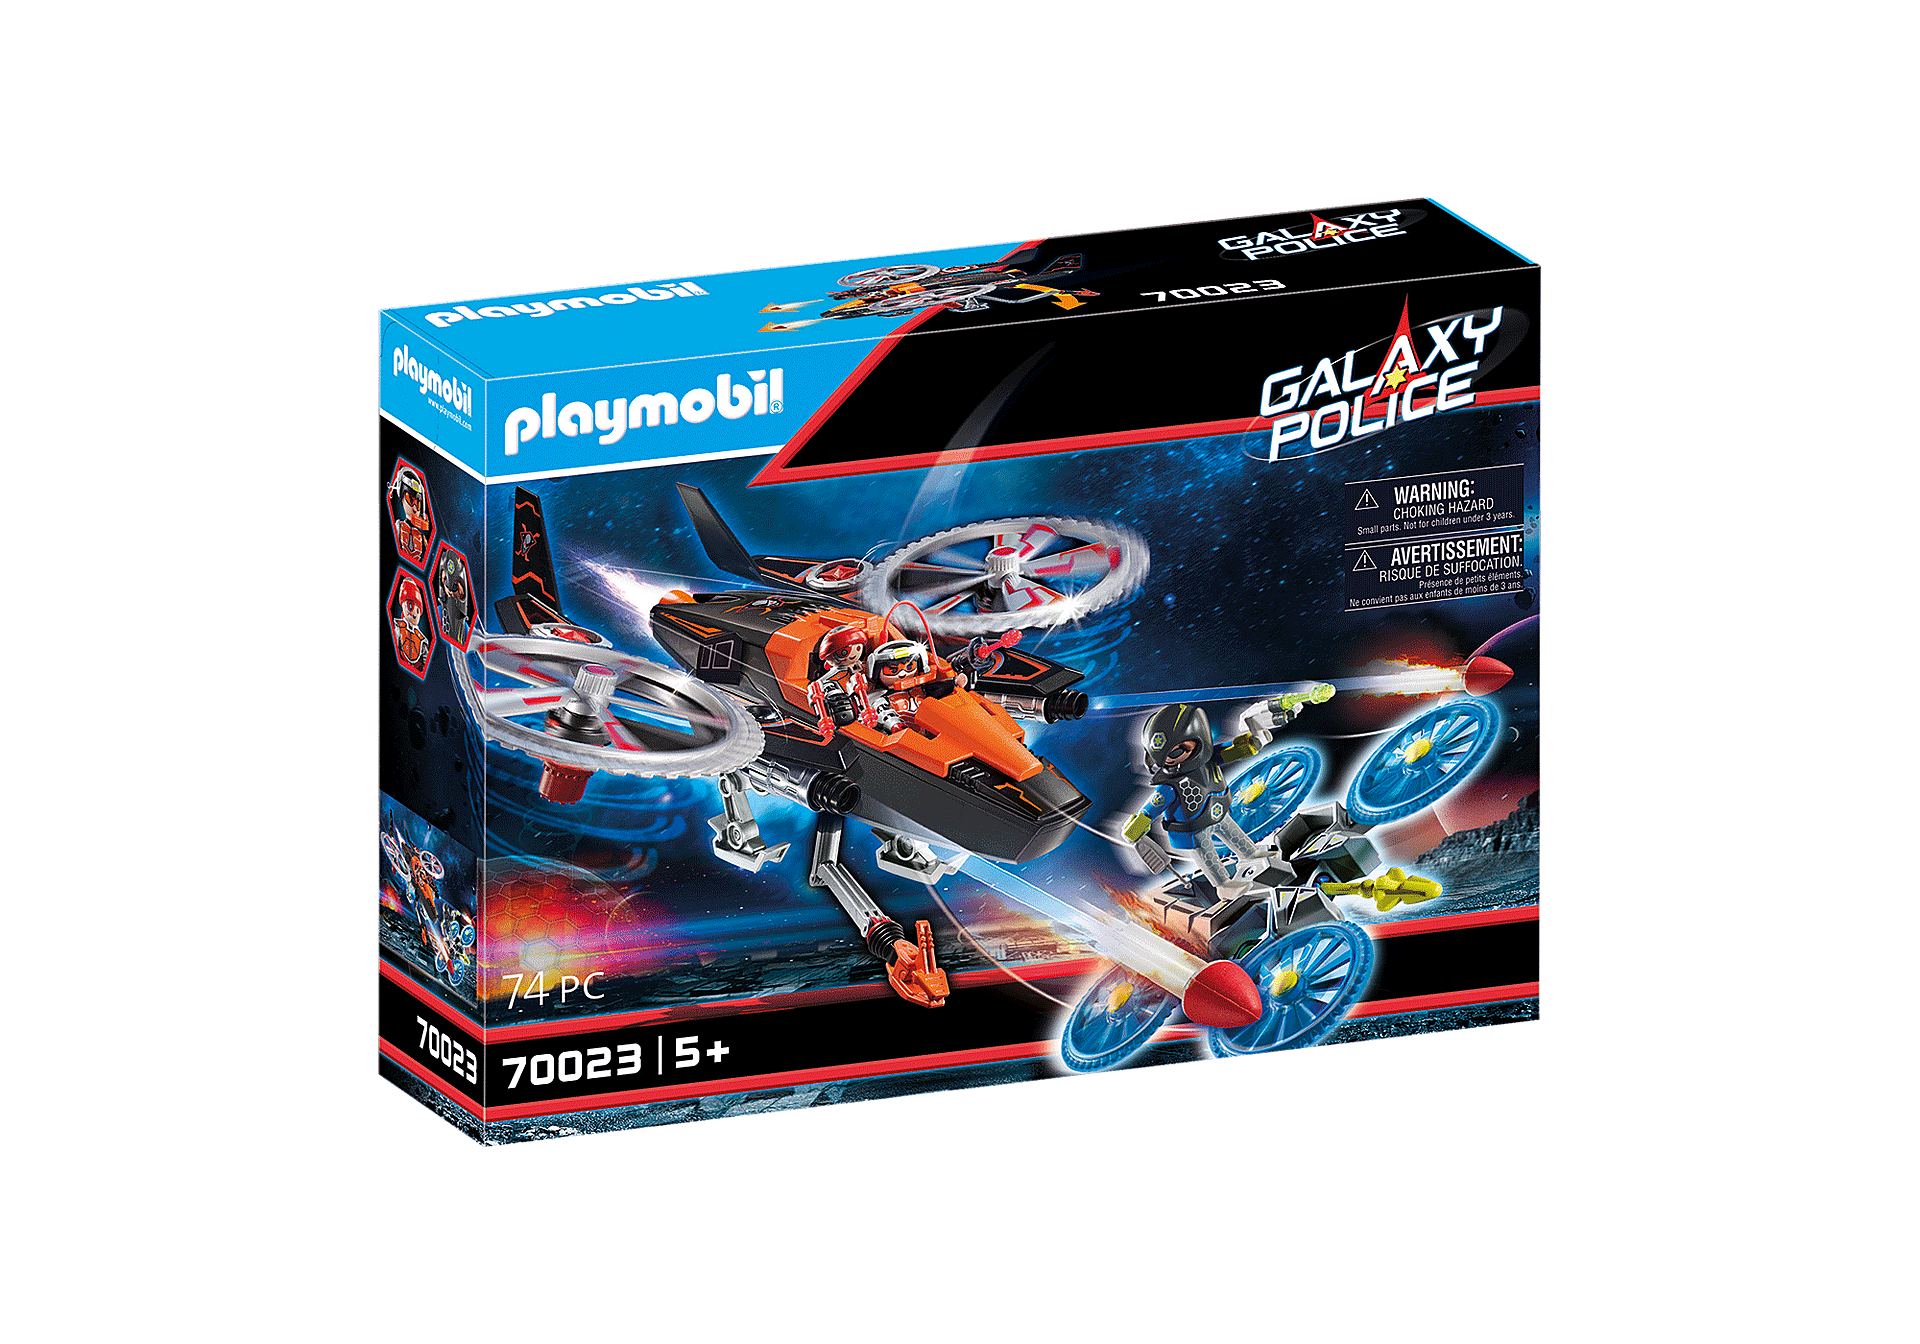 Playmobil - Galaxy Police - Space Priates Helicopter (70023)